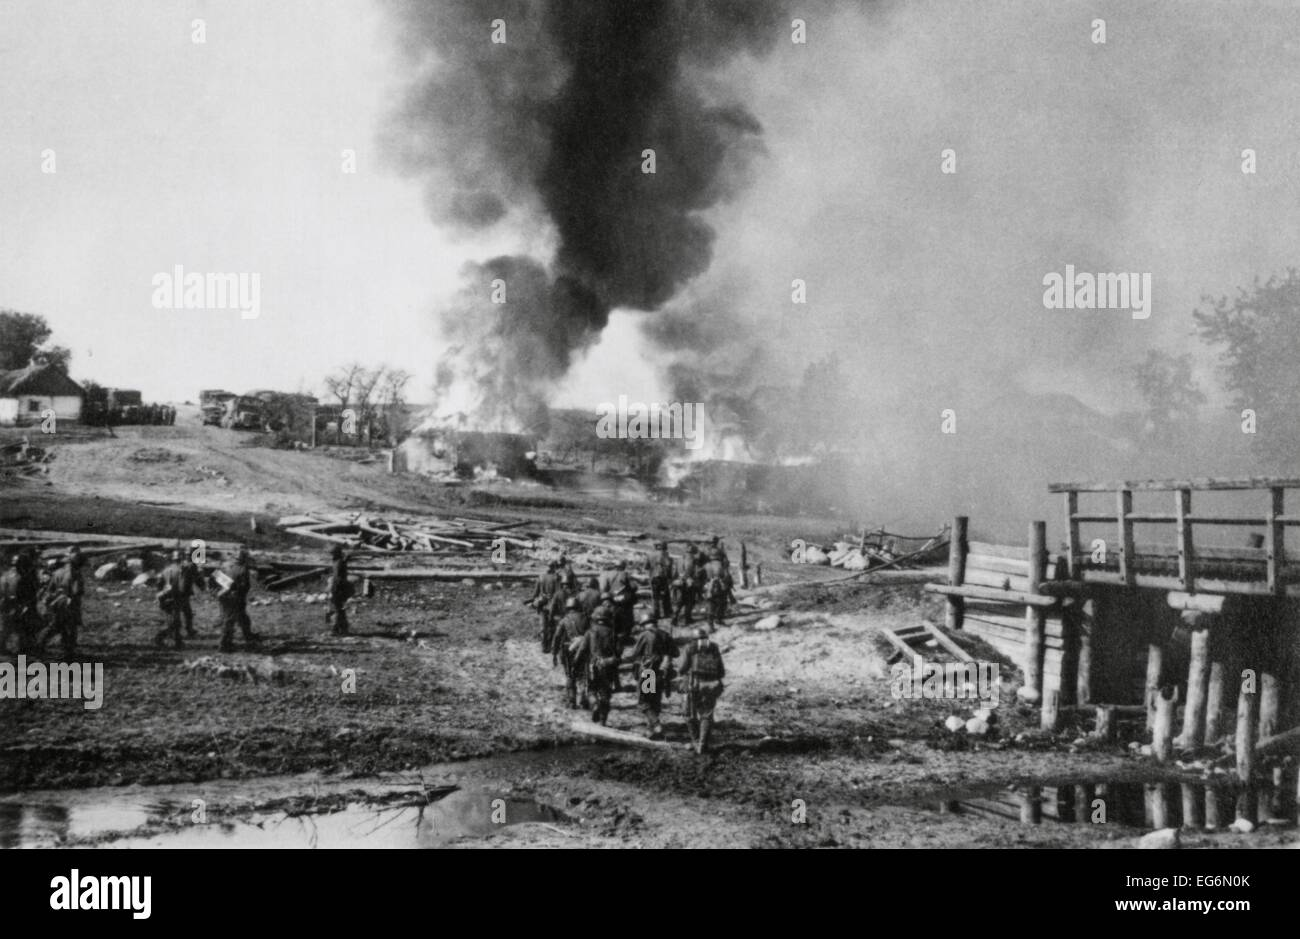 German Infantry Advancing On A Burning Village In The